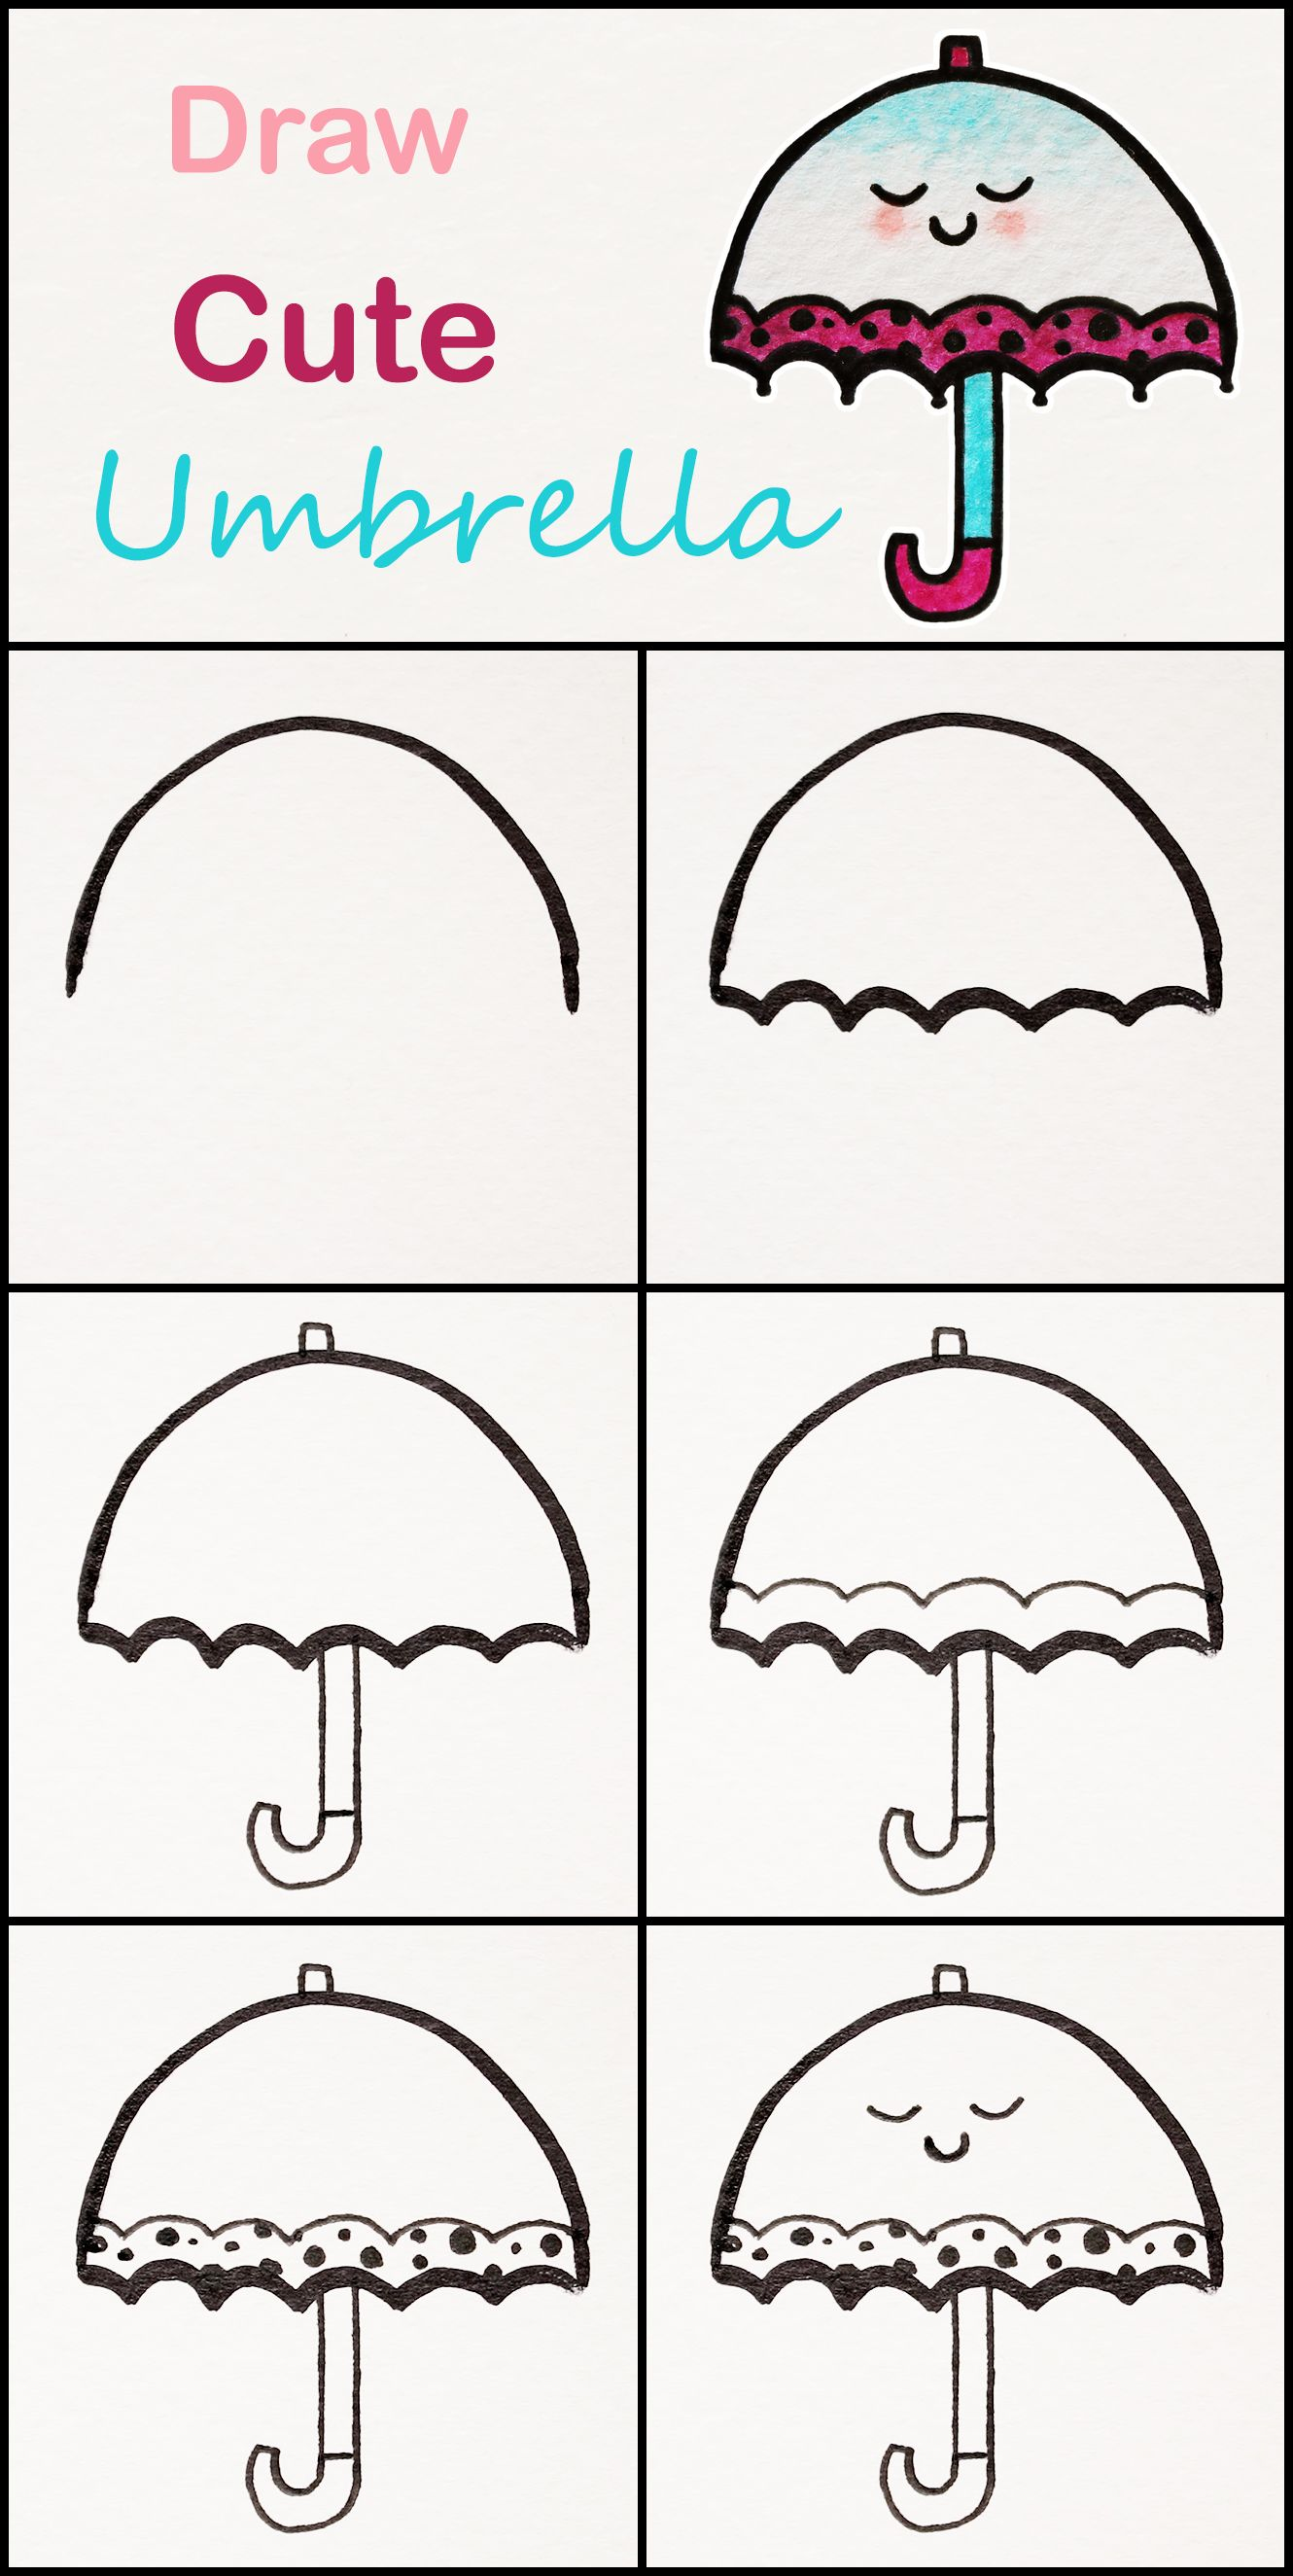 Learn How To Draw A Cute Umbrella Step By Step Very Simple Tutorial Umbrella Drawings Kawaii Tutorial Cute Easy Drawings Easy Drawings Cute Umbrellas